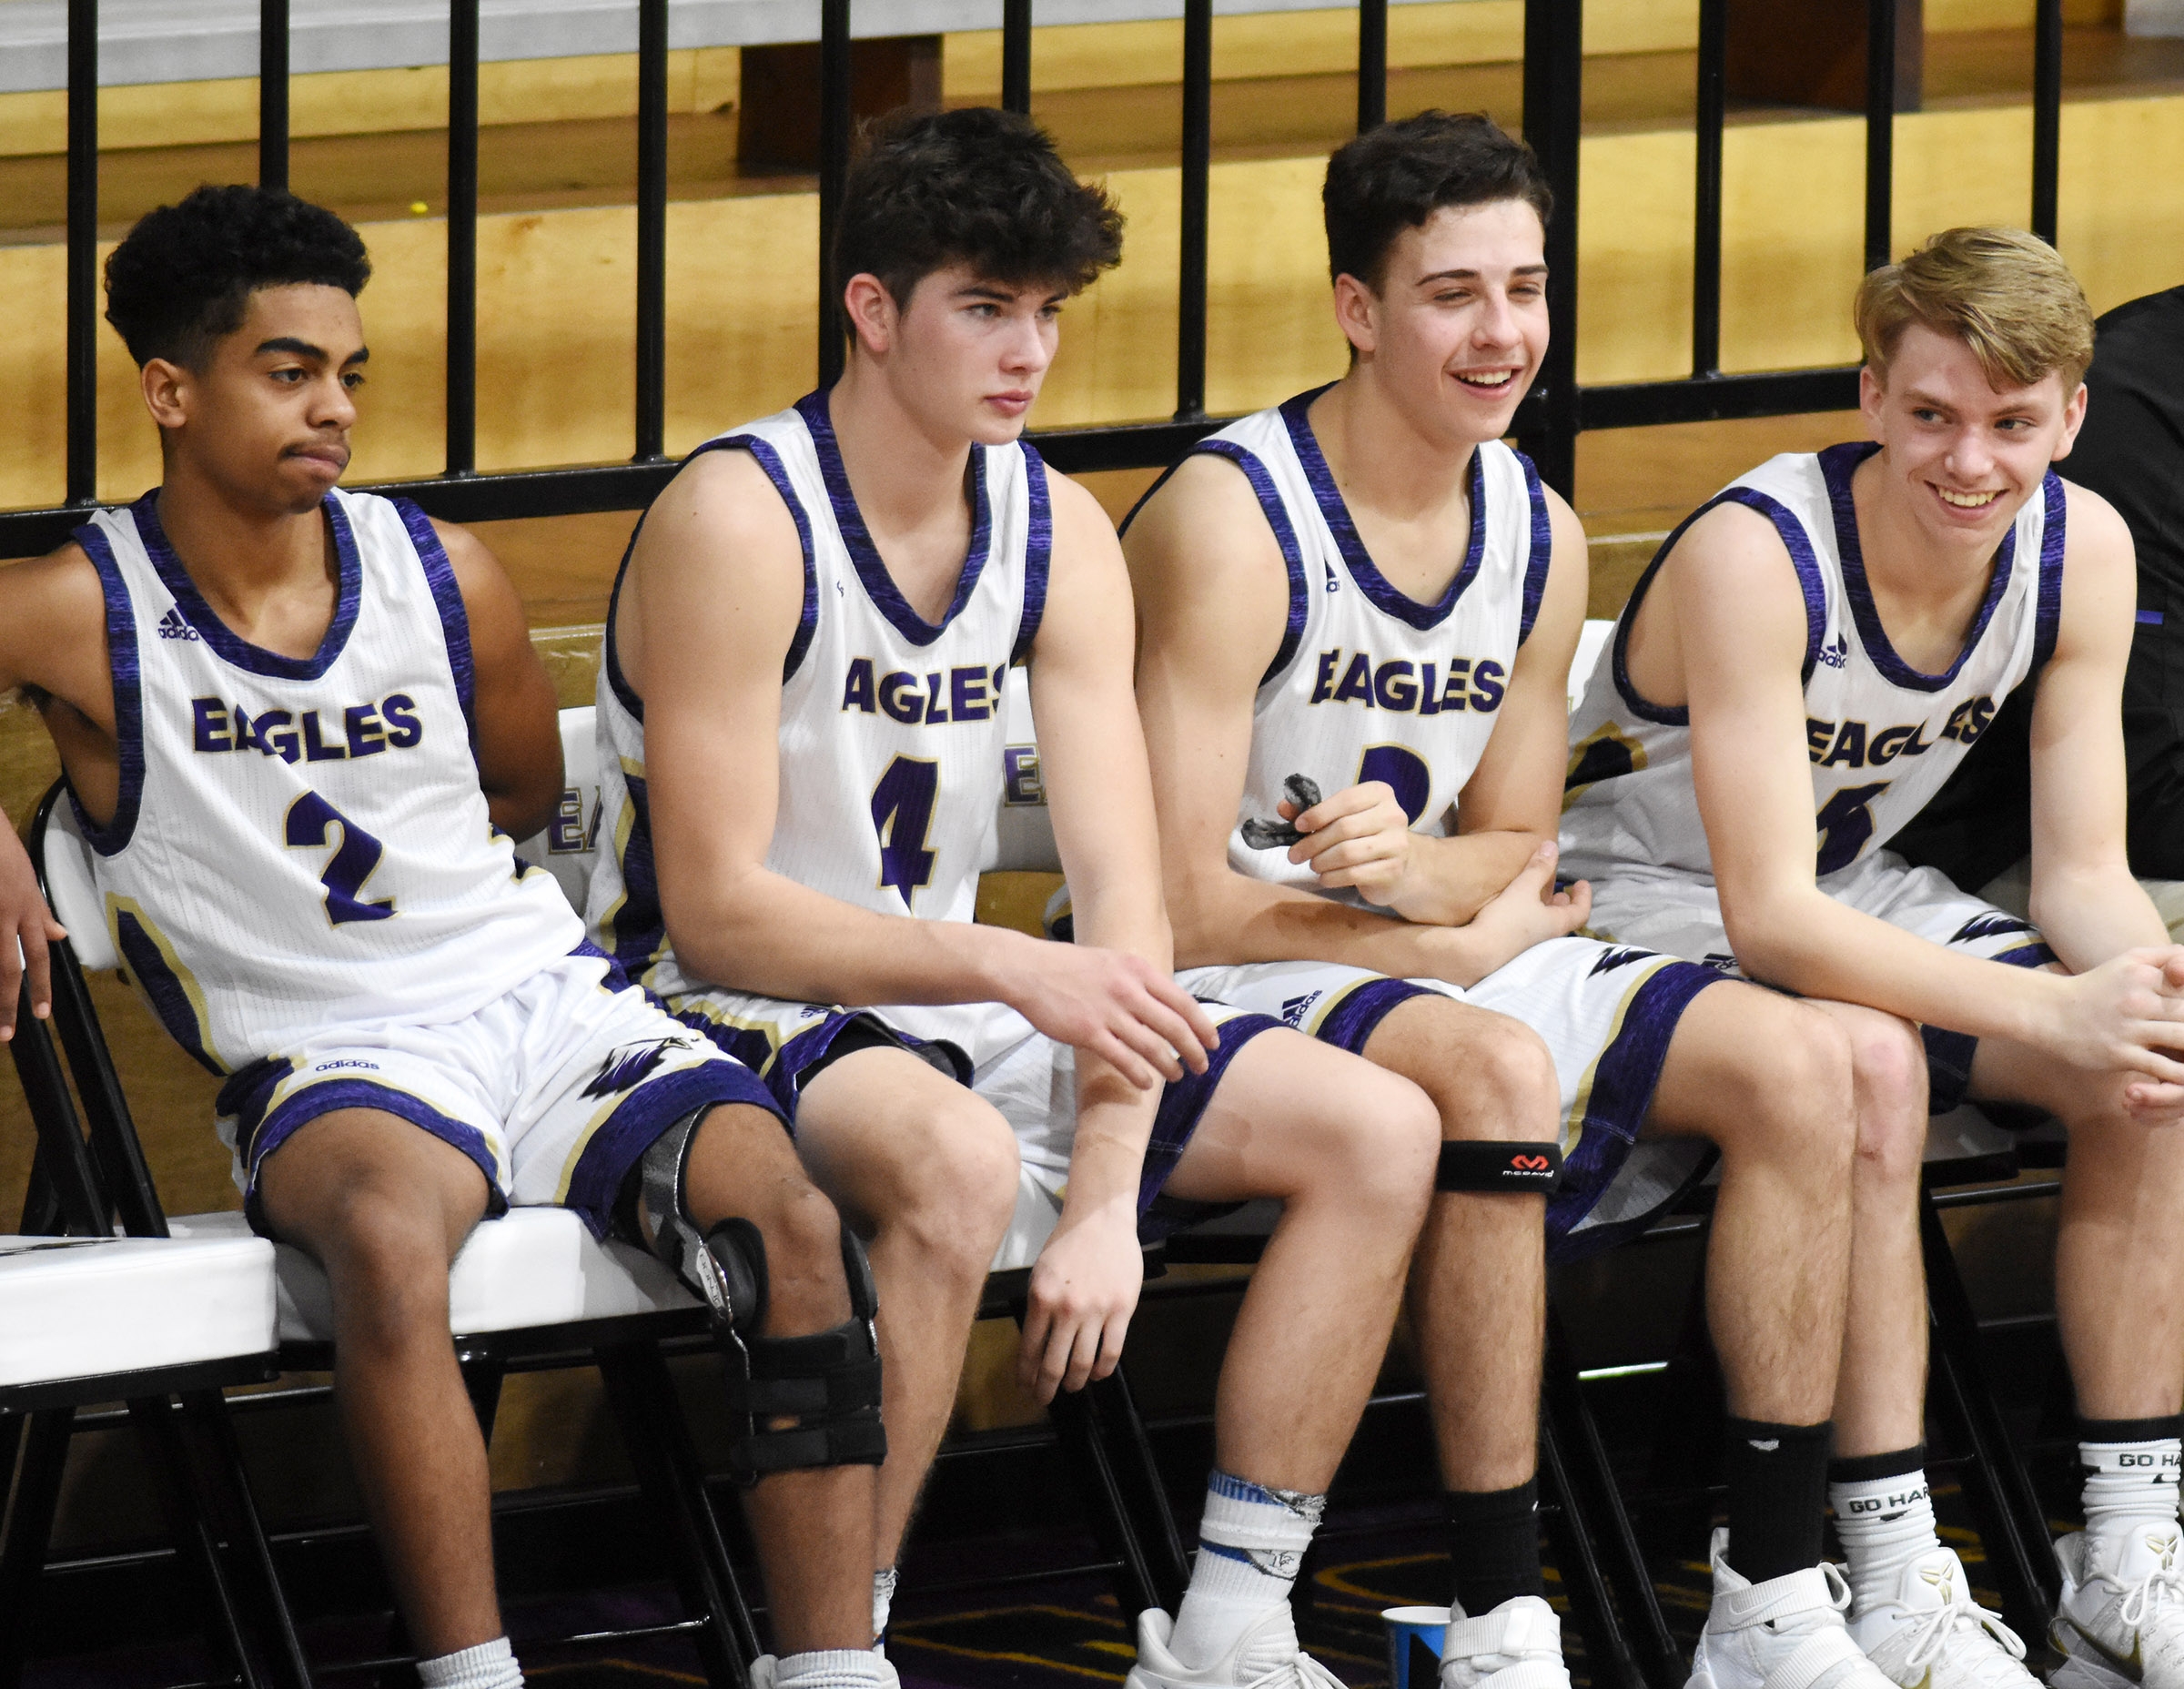 From left, CHS junior Davon Cecil, sophomore Mark Rigsby and freshmen John Orberson and Arren Hash talk as they sit on the bench.